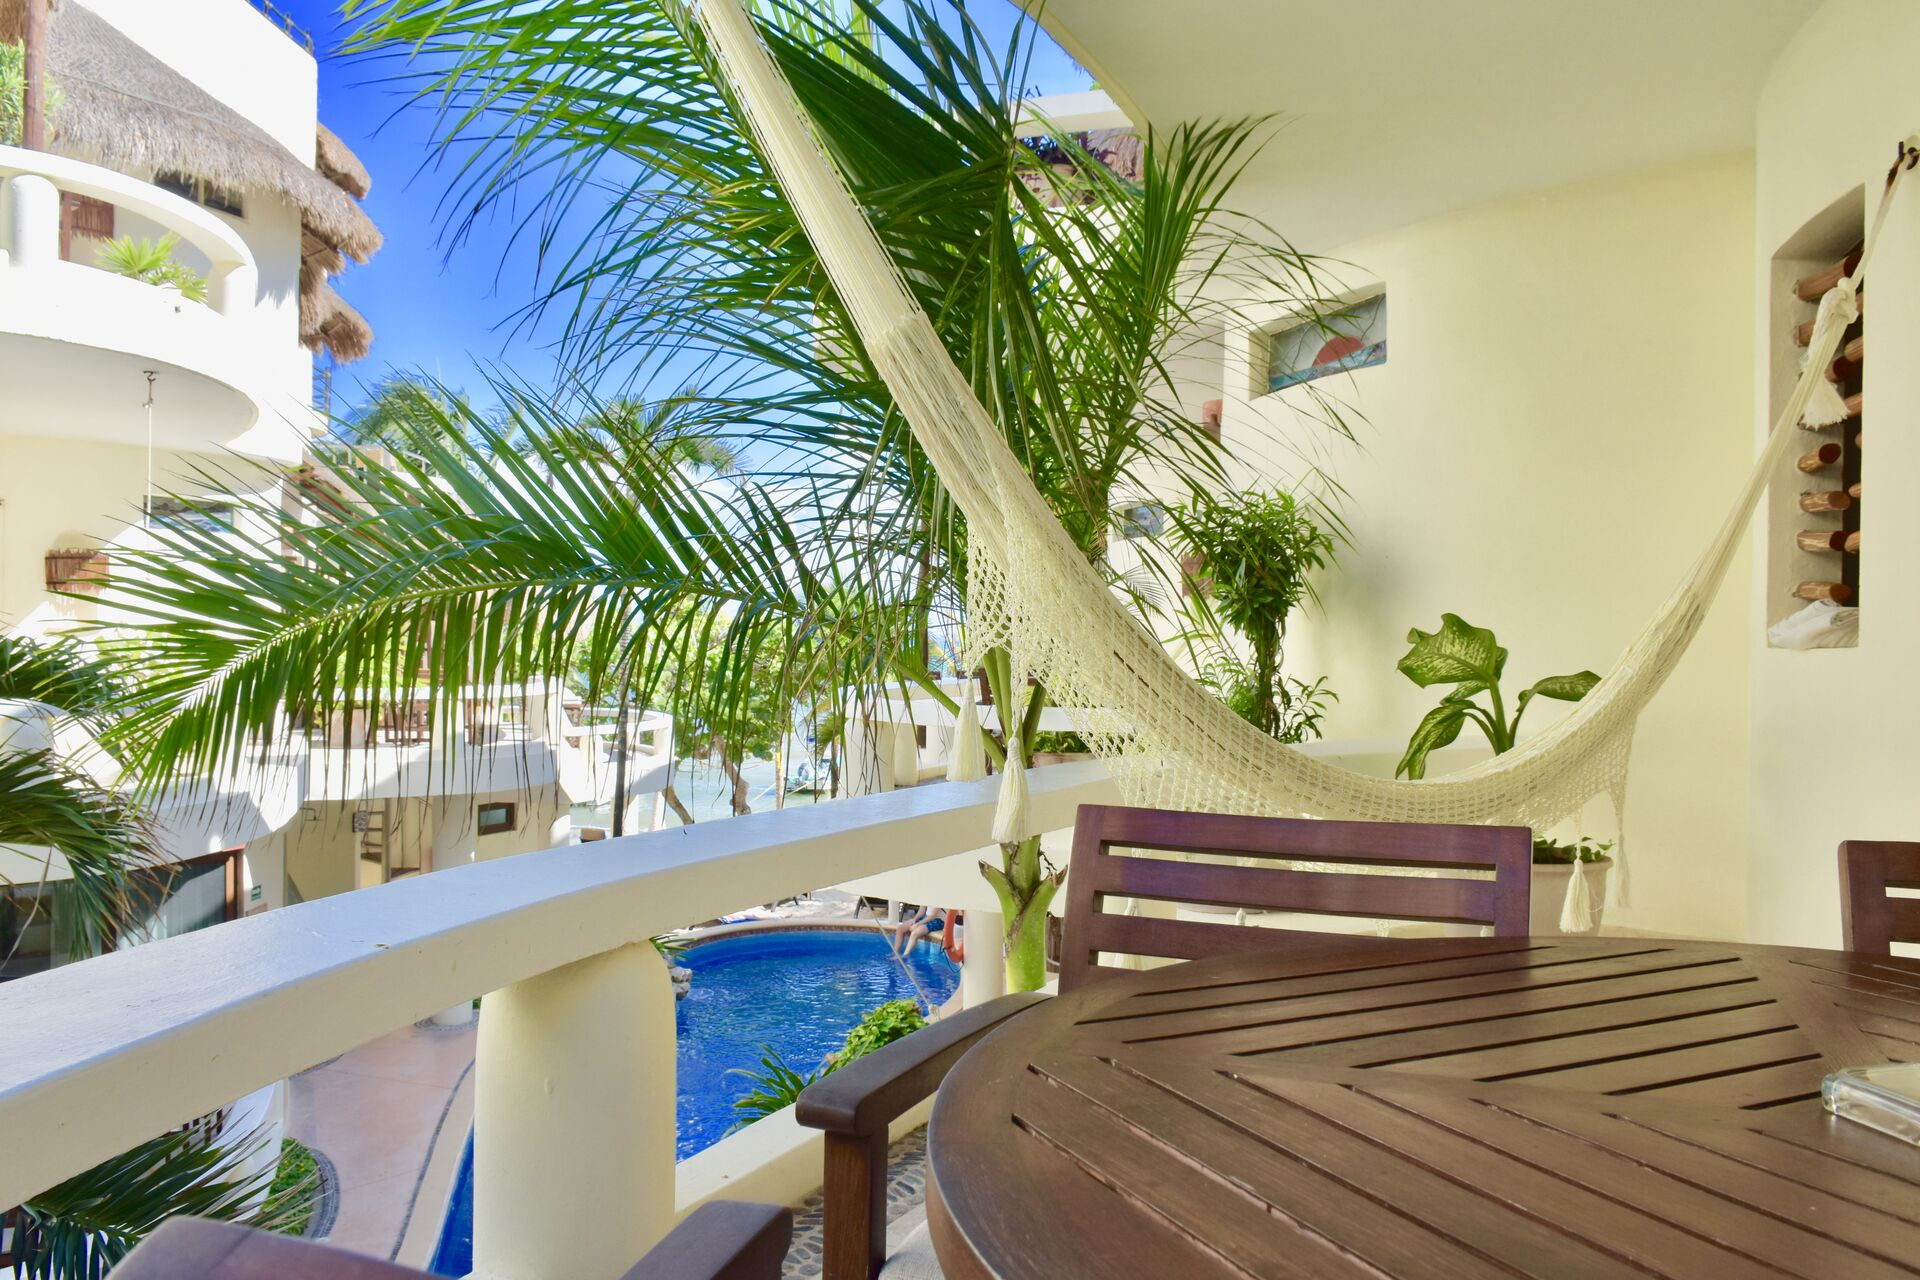 Ocean view balcony with chairs and hammock.Ocean view balcony with chairs and hammock.